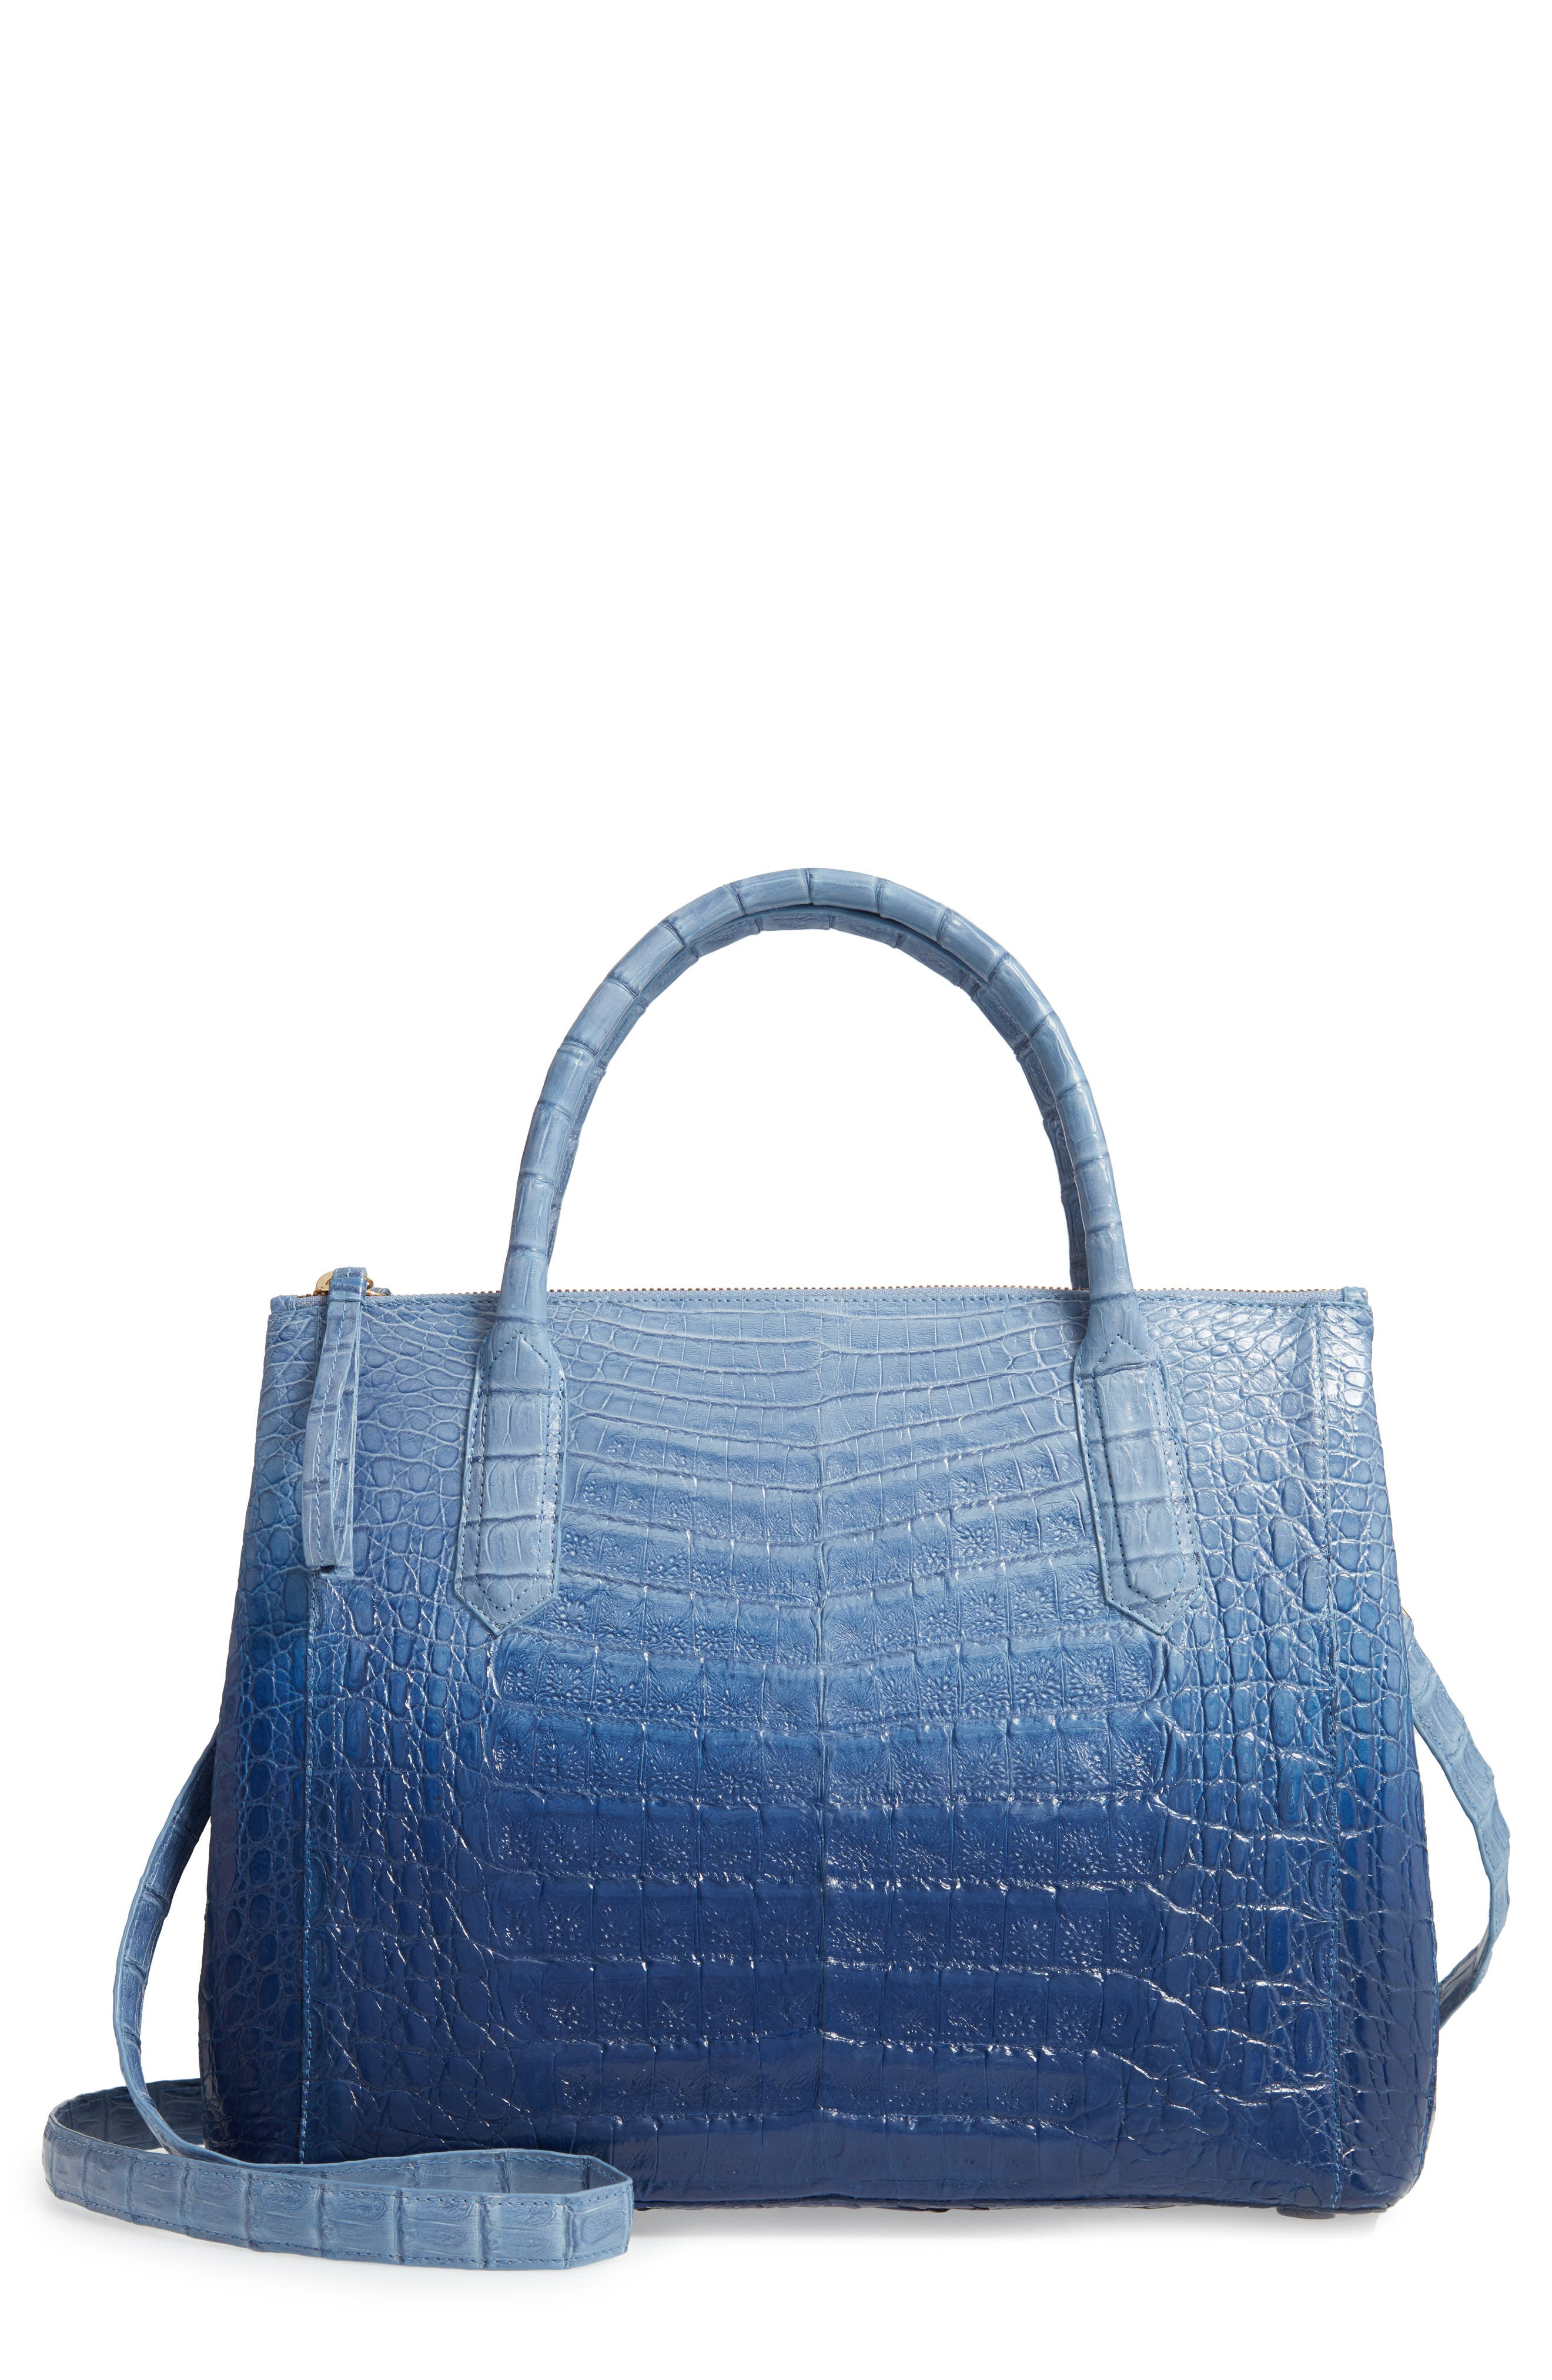 ad9b1b8df243 NANCY GONZALEZ Tote Bags for Women: Leather, Coated Canvas, & Neoprene |  Nordstrom